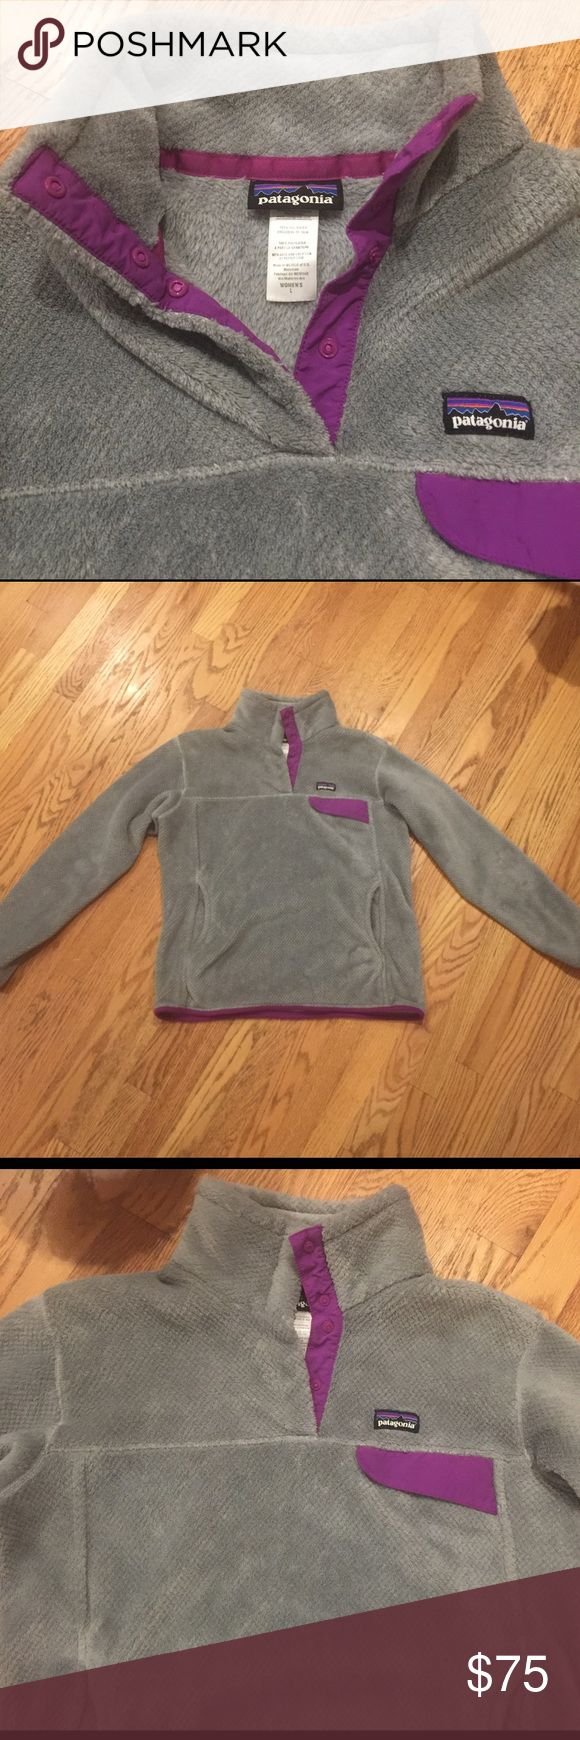 Patagonia large Retool Pullover grey w/ purple VGUC condition size large women's Patagonia Pullover retool.  This fits small for a large but is in great condition with beautiful colors Patagonia Sweaters